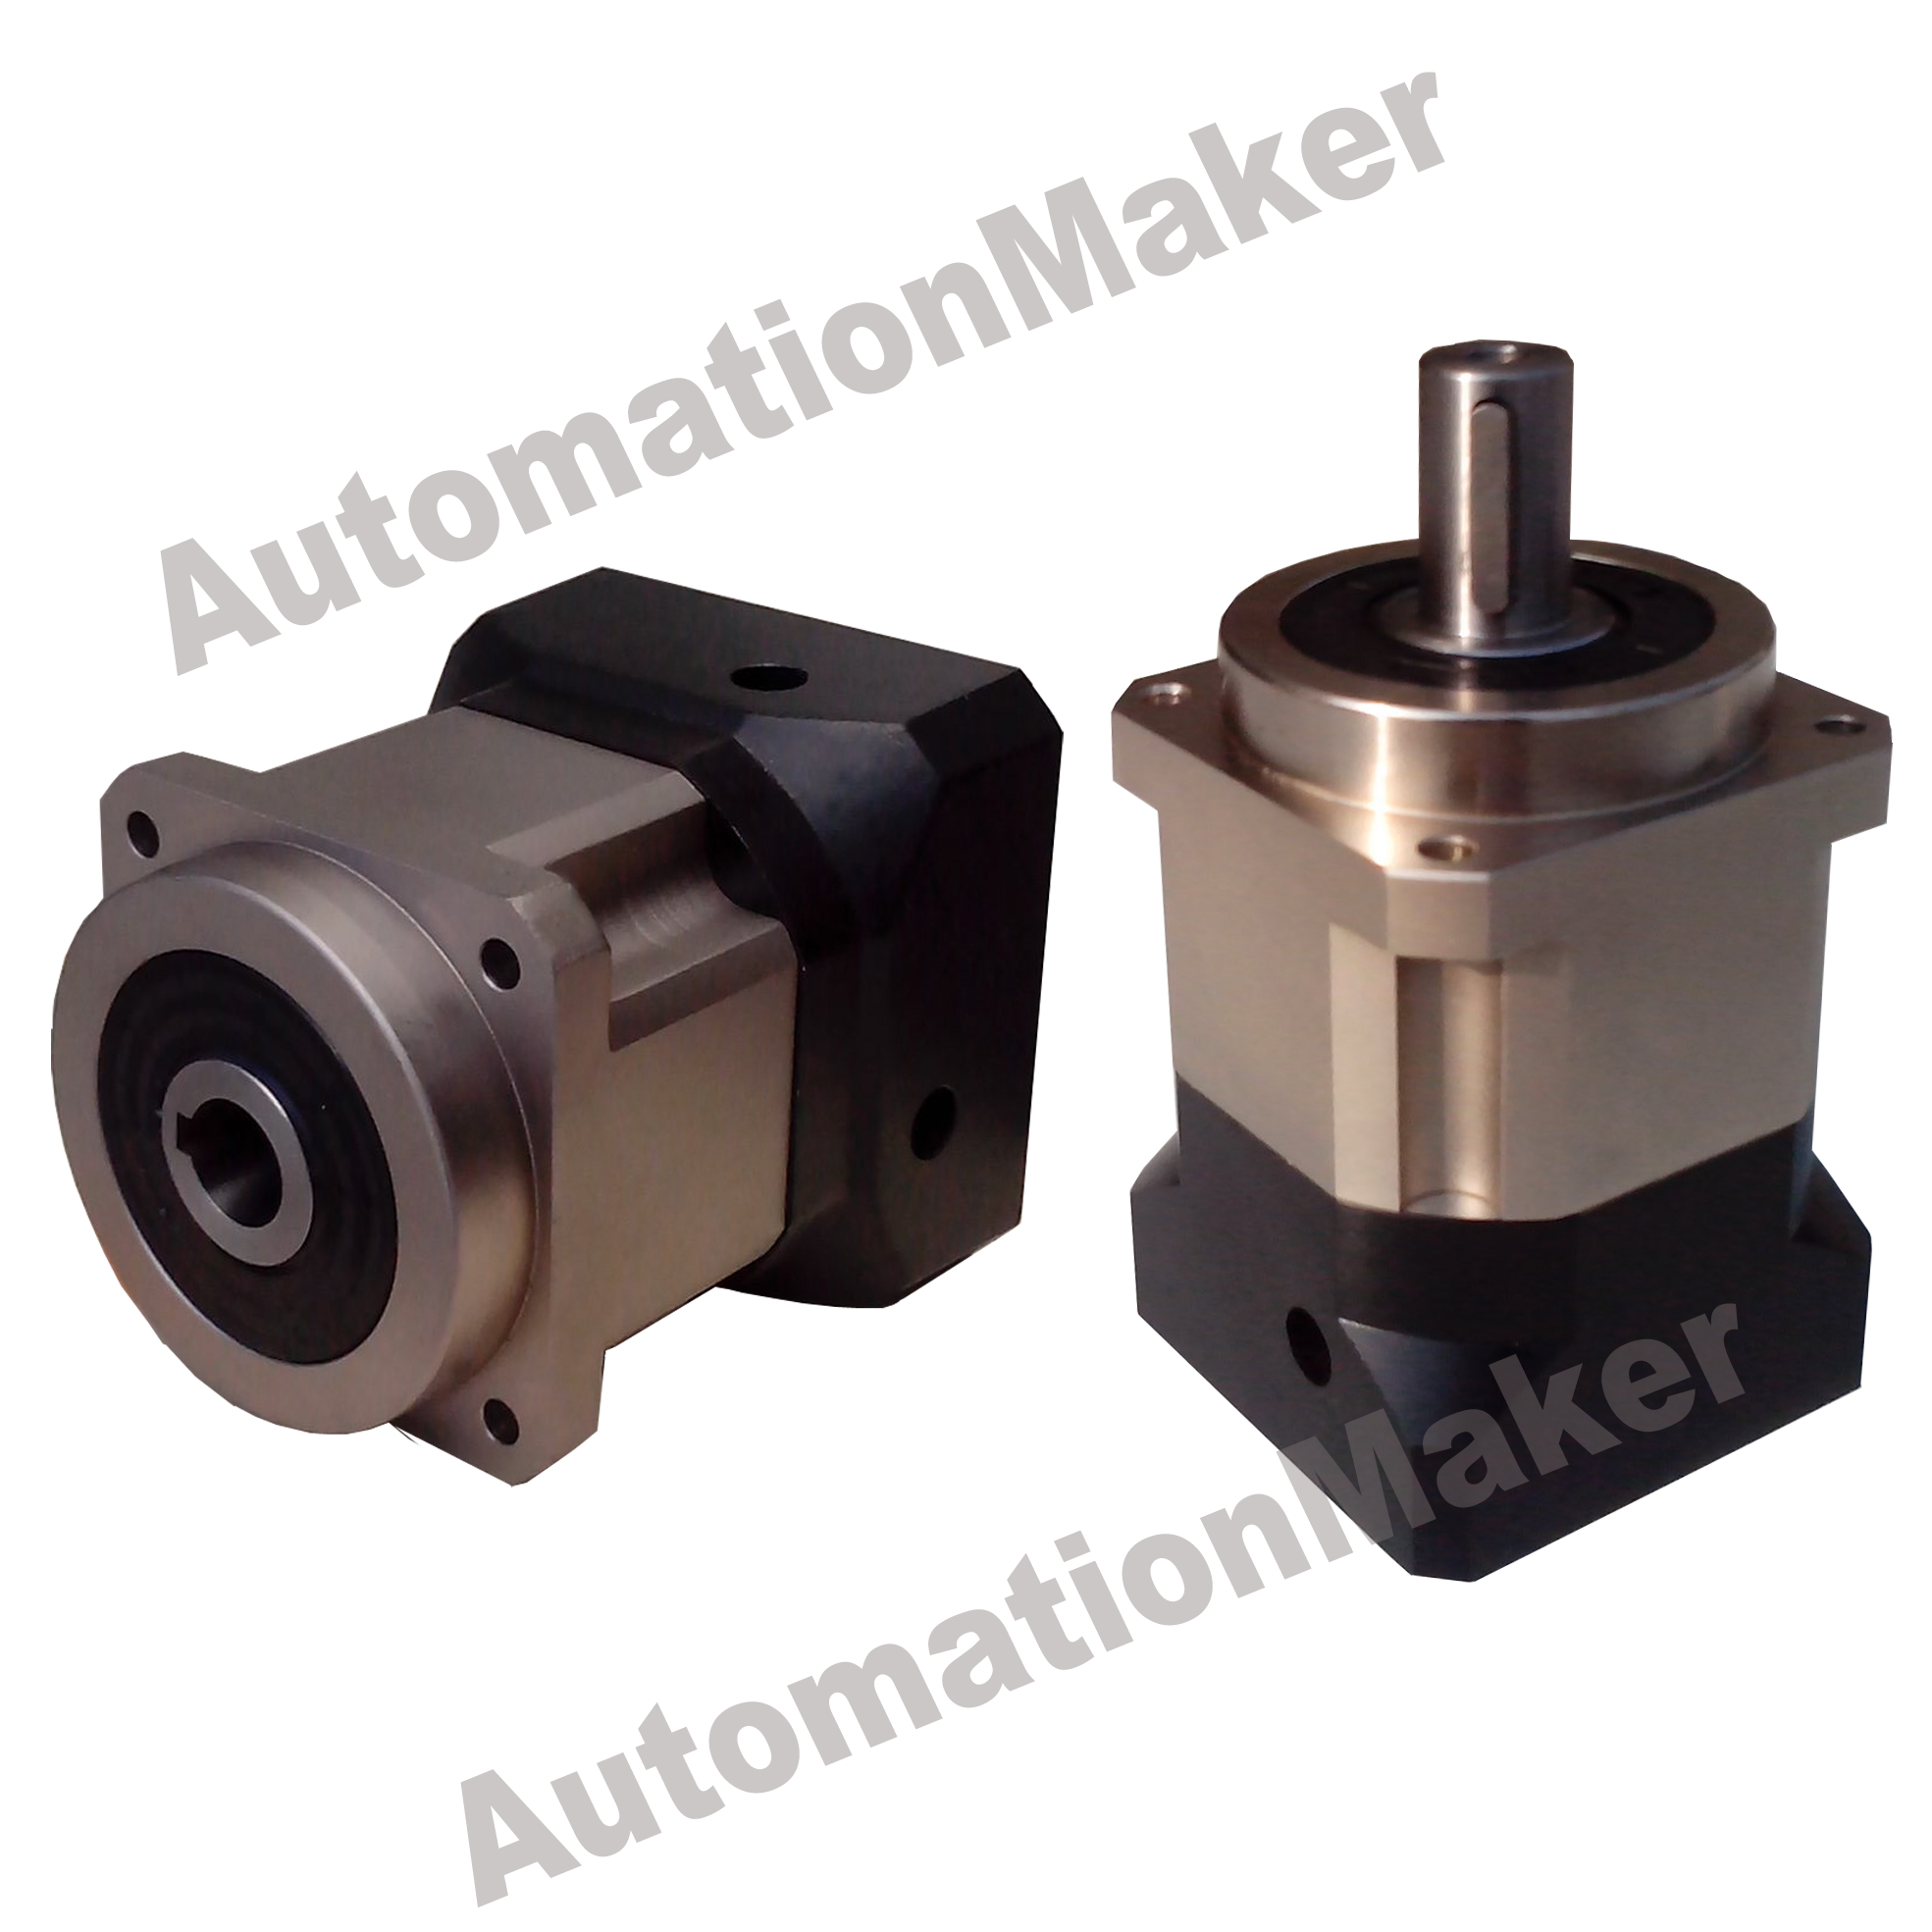 Planetary Gearbox Ab180 1 64 To 1 1000 Servo Motor